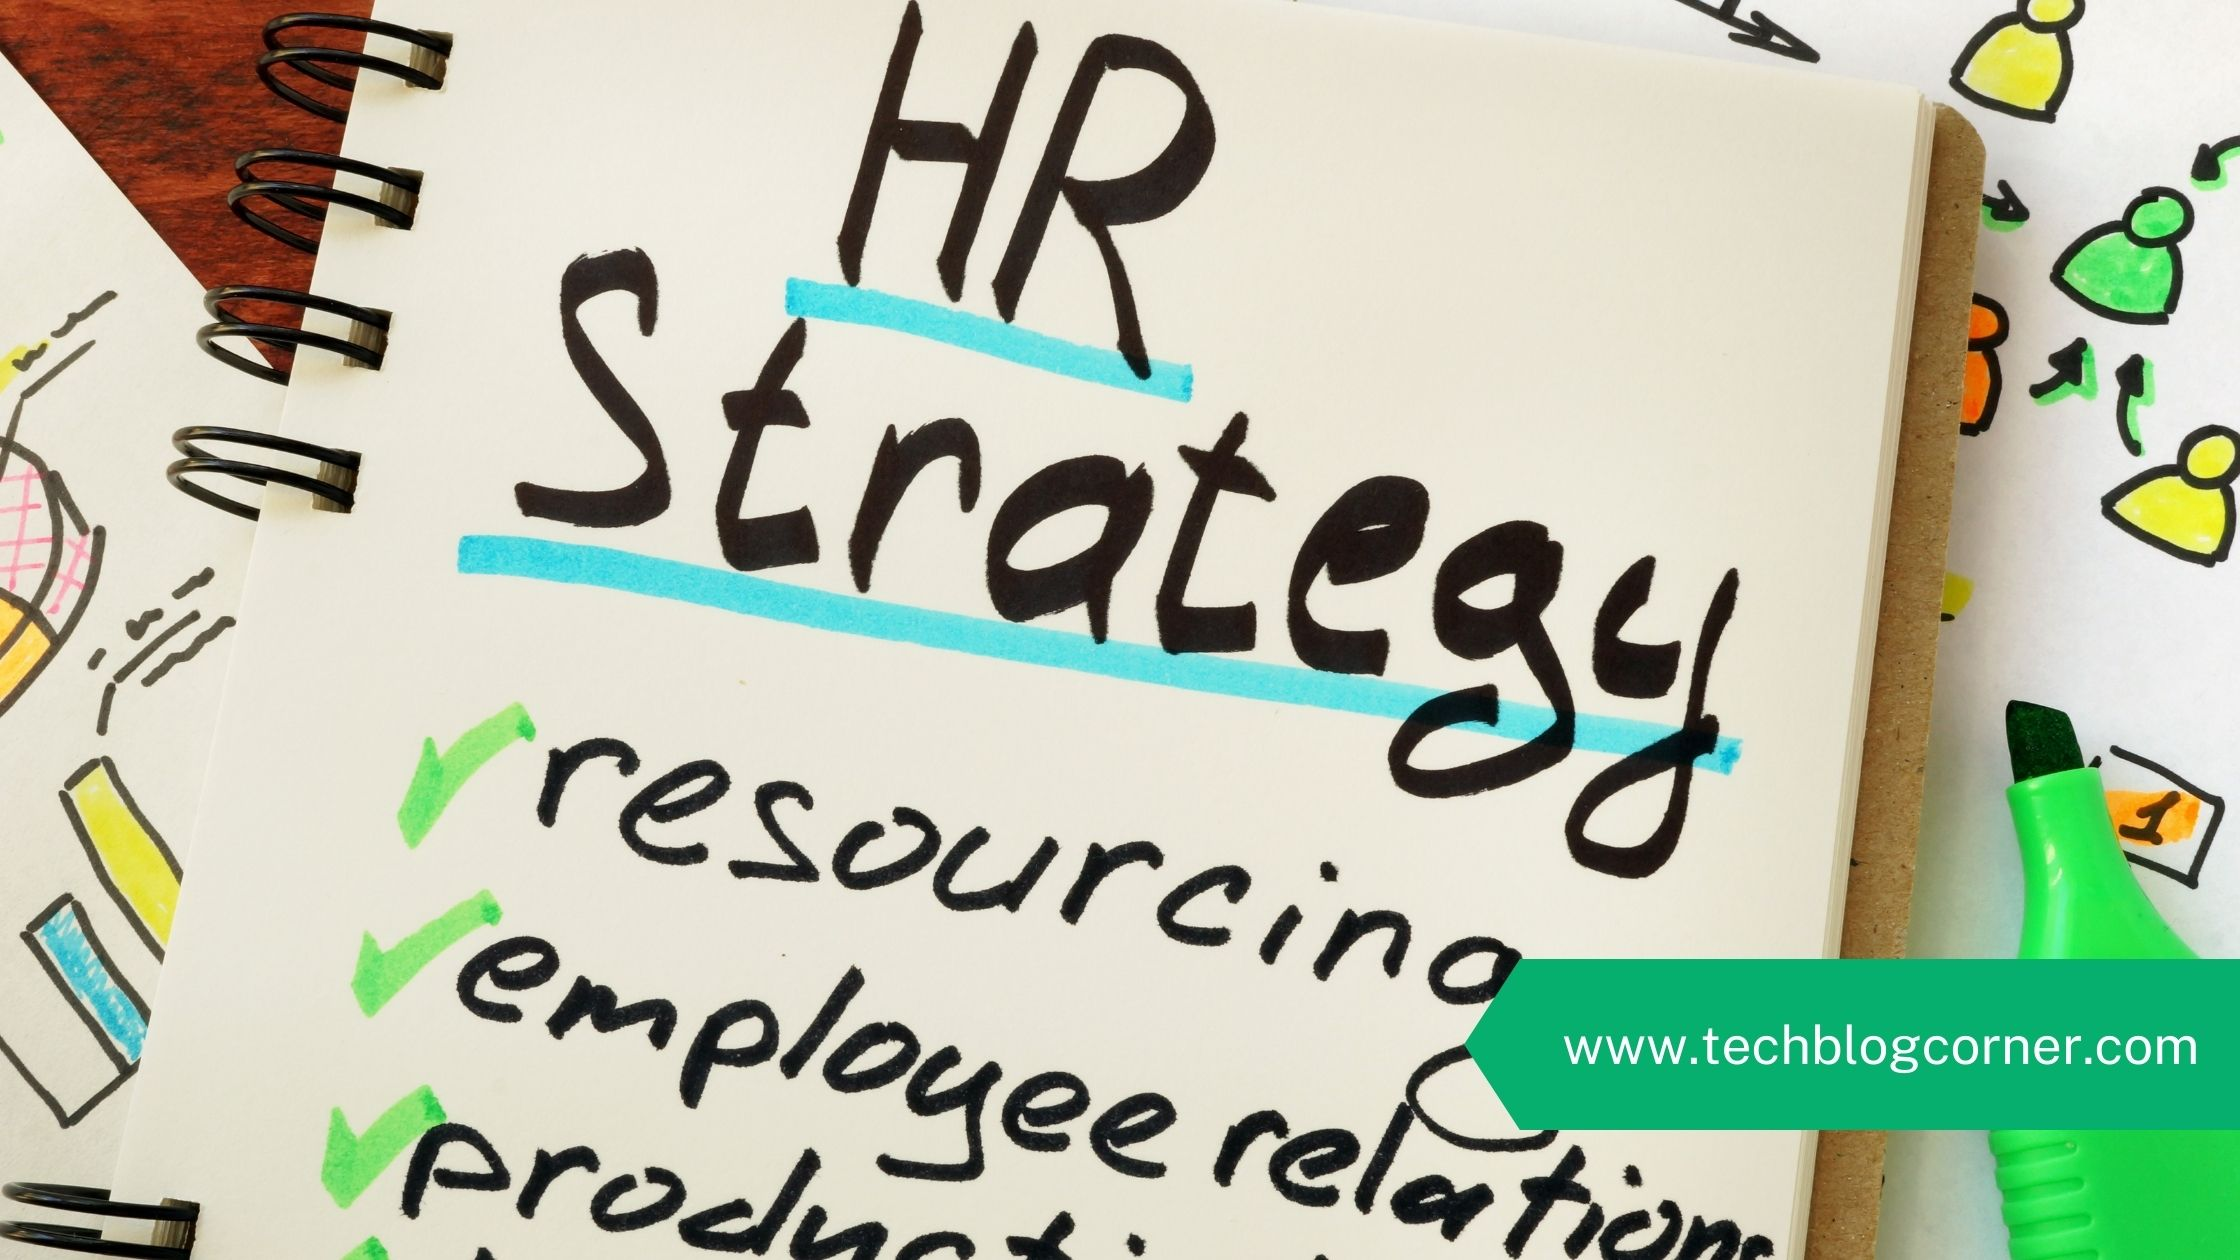 tips-for-hr-data-strategy